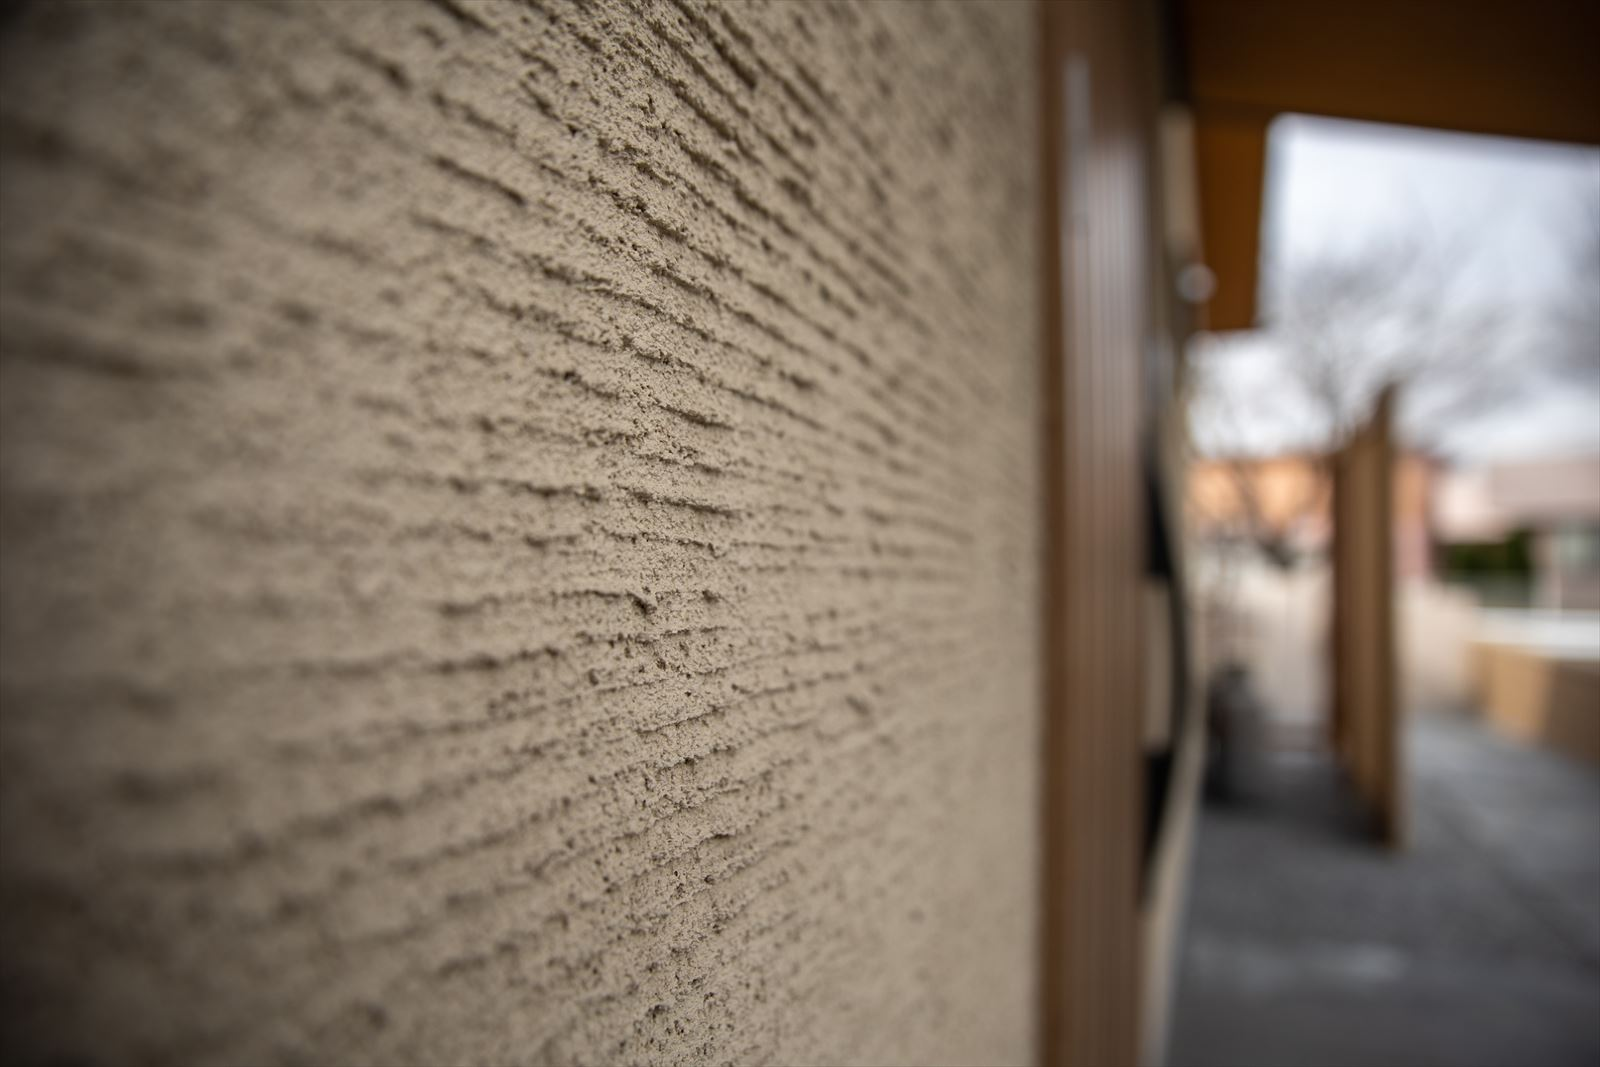 pattern plaster or mortar-covered wall